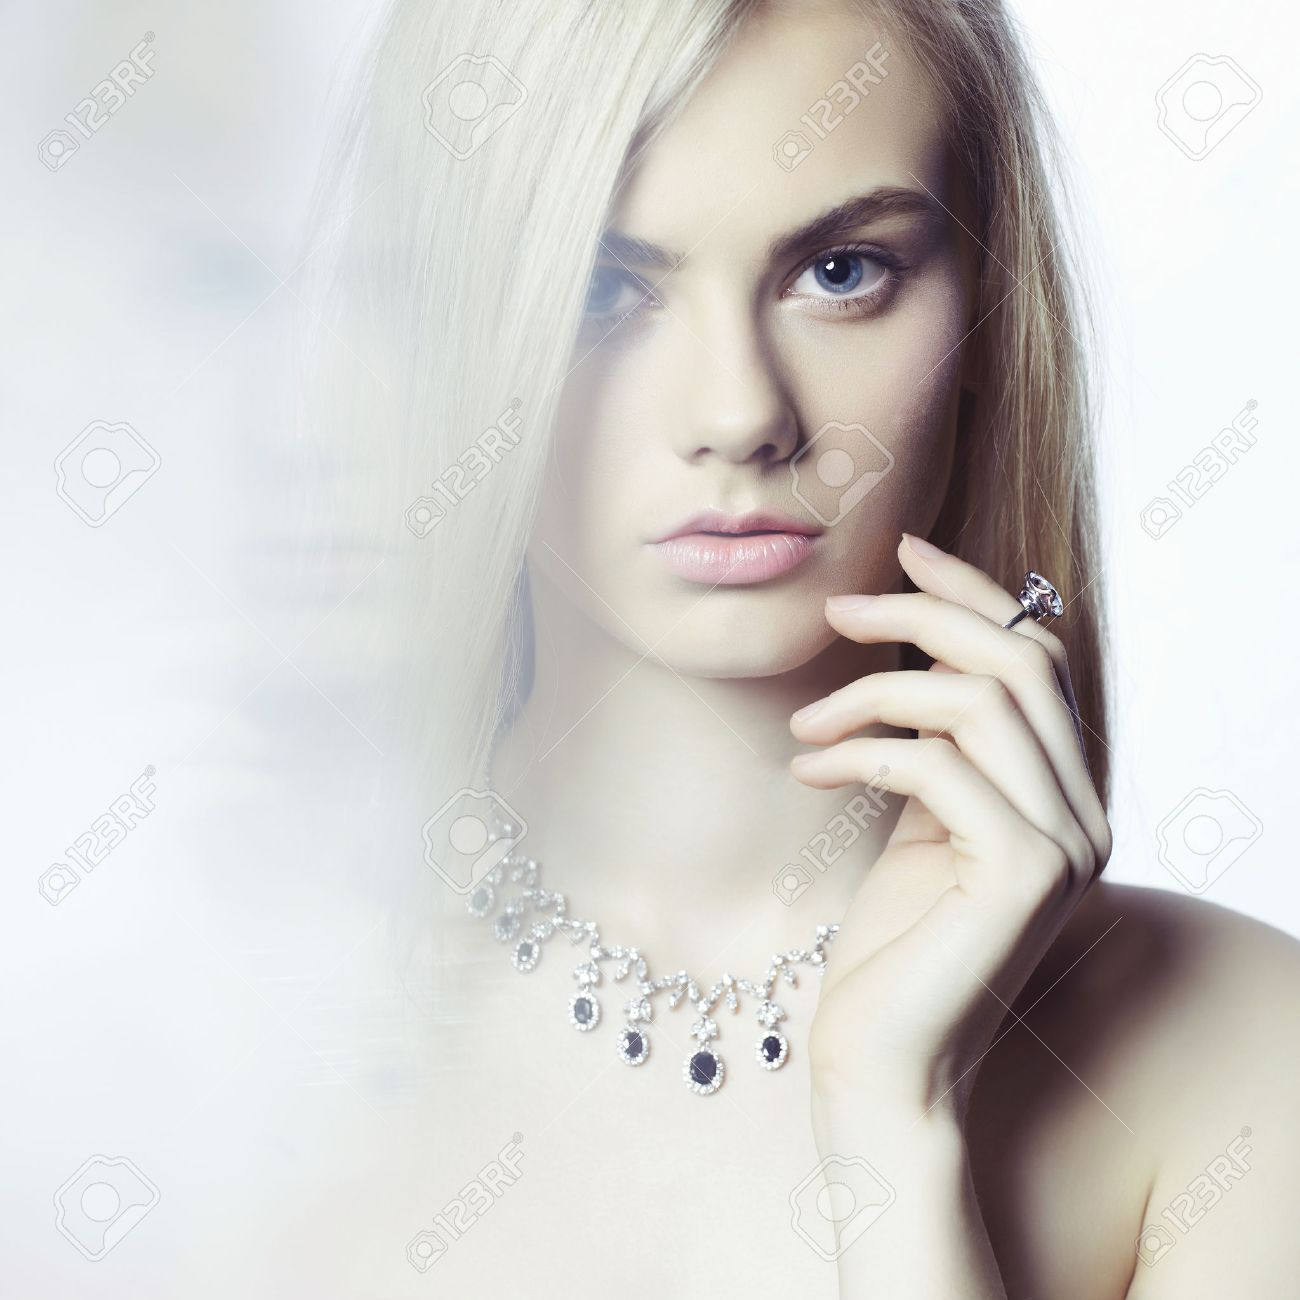 Studio fashion portrait of young beautiful lady in jewelry Standard-Bild - 38121241